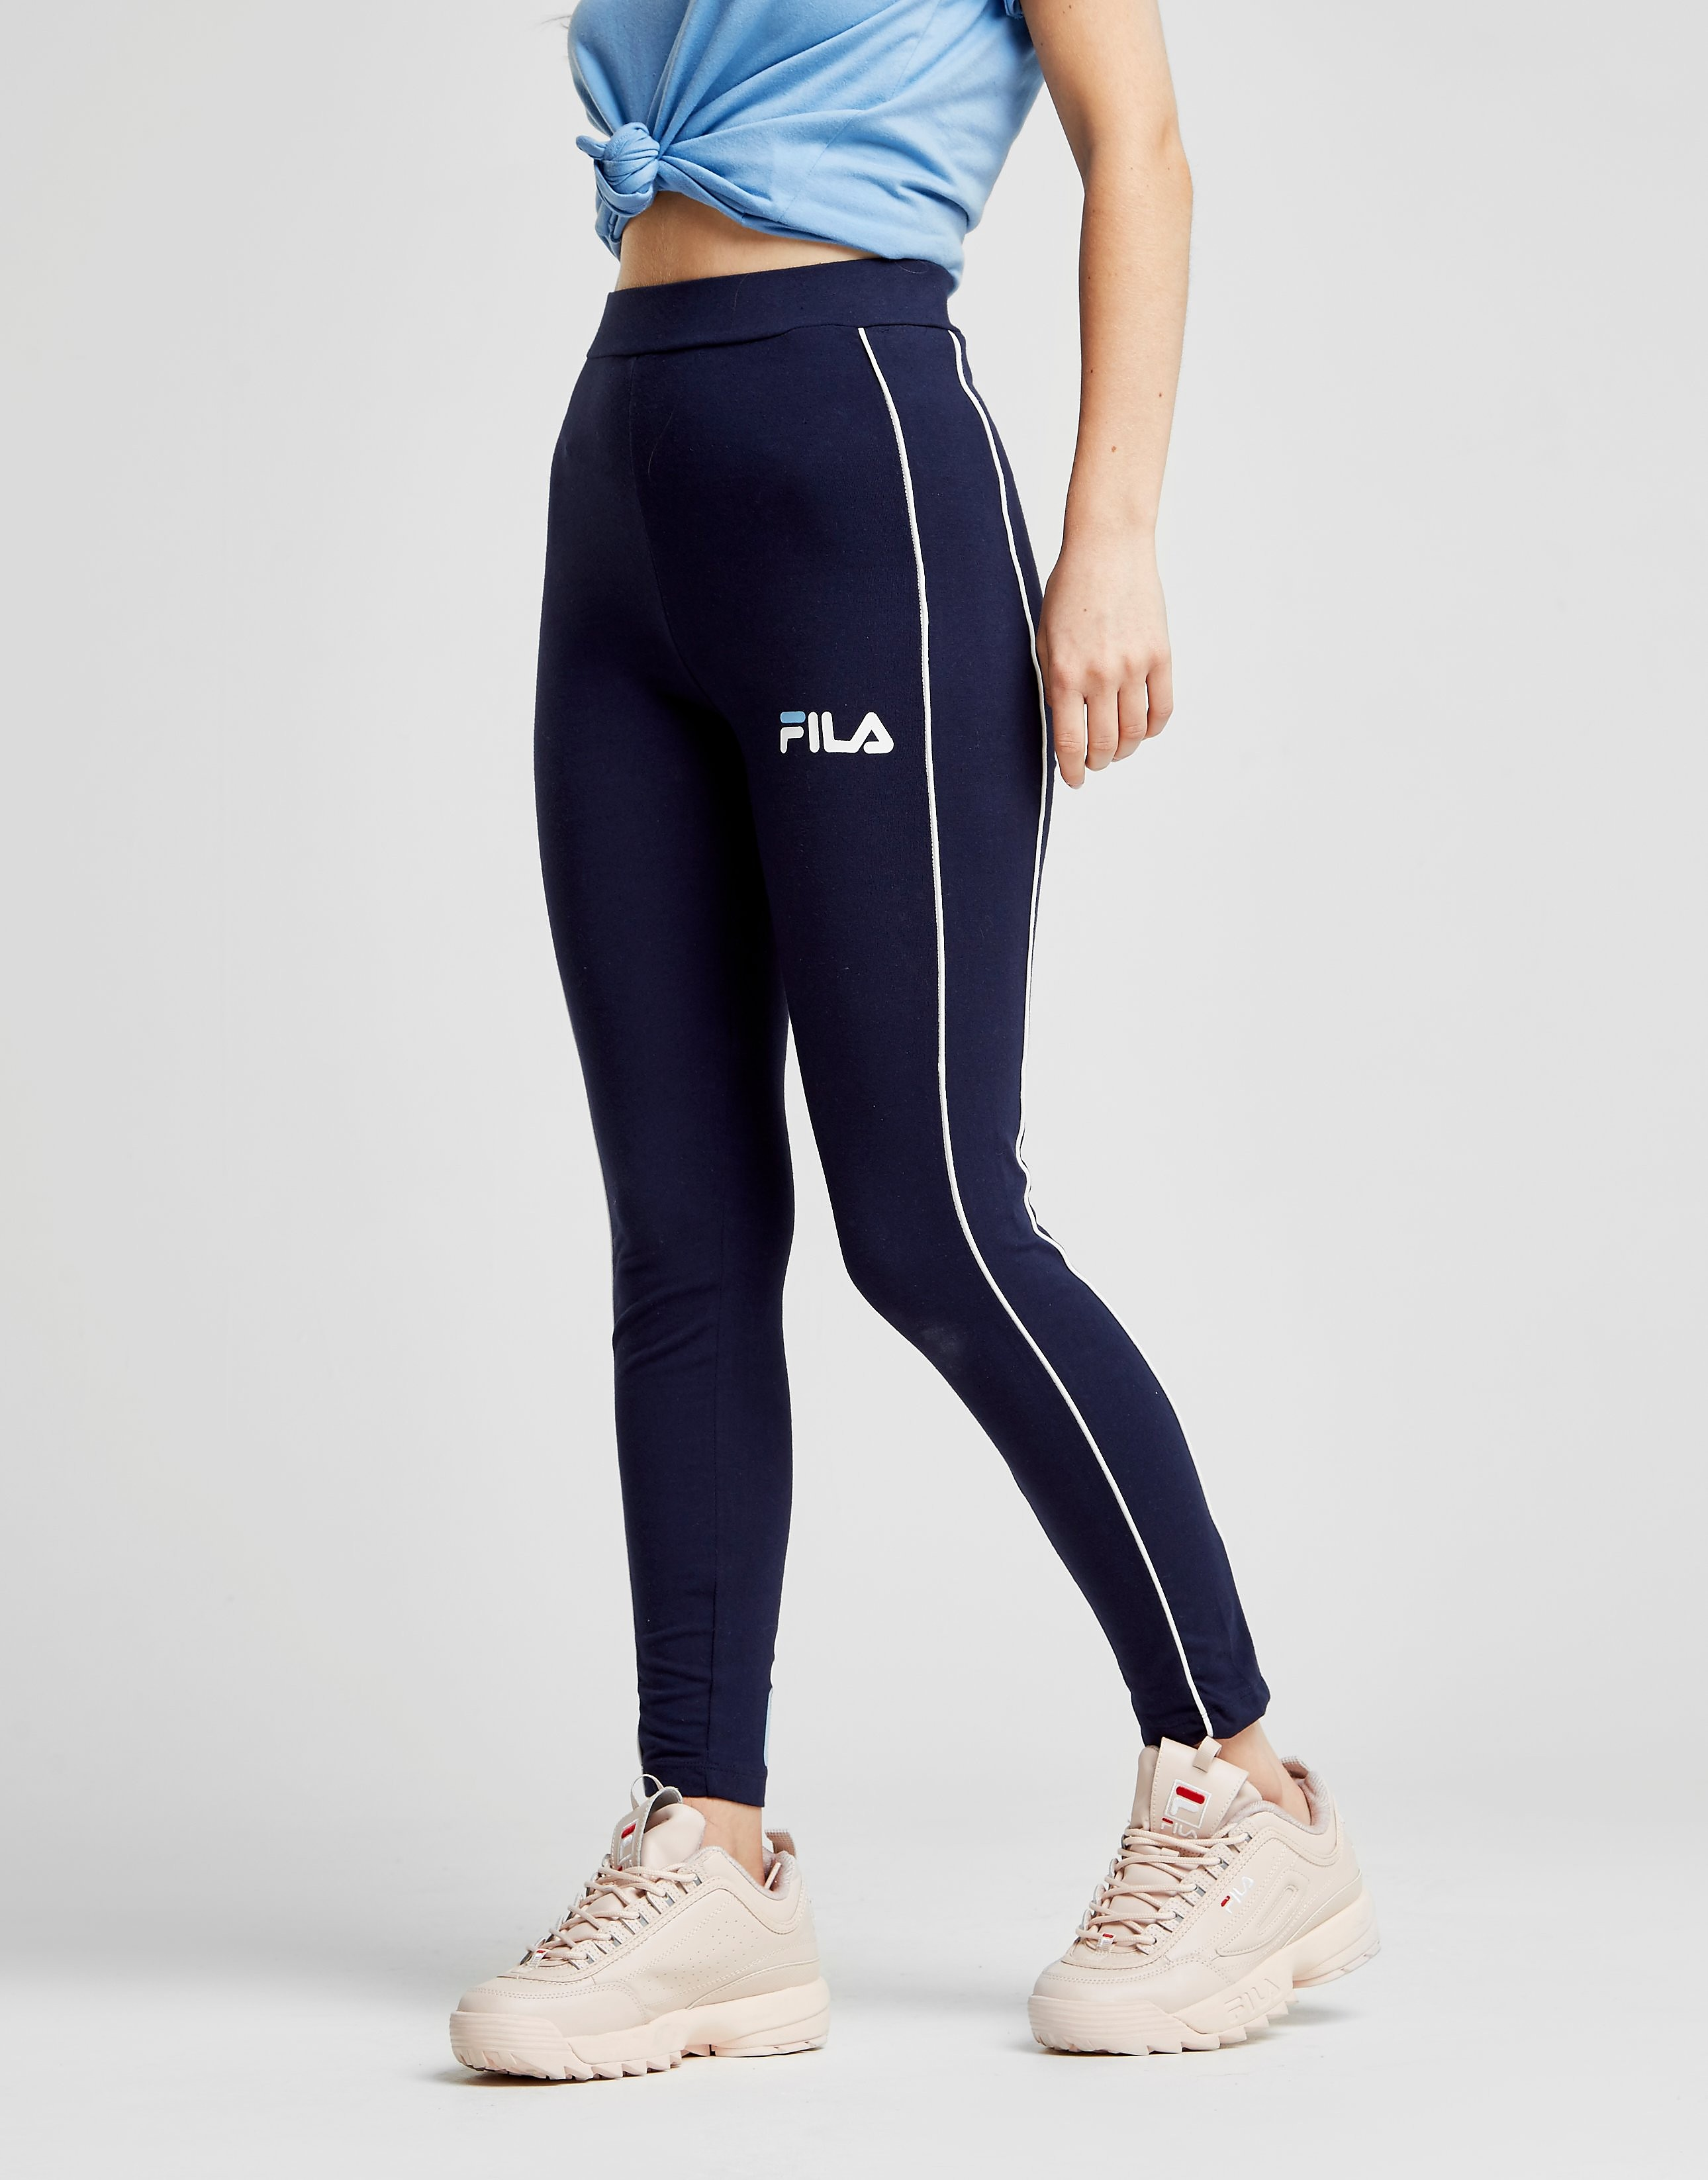 Fila Piping Leggings